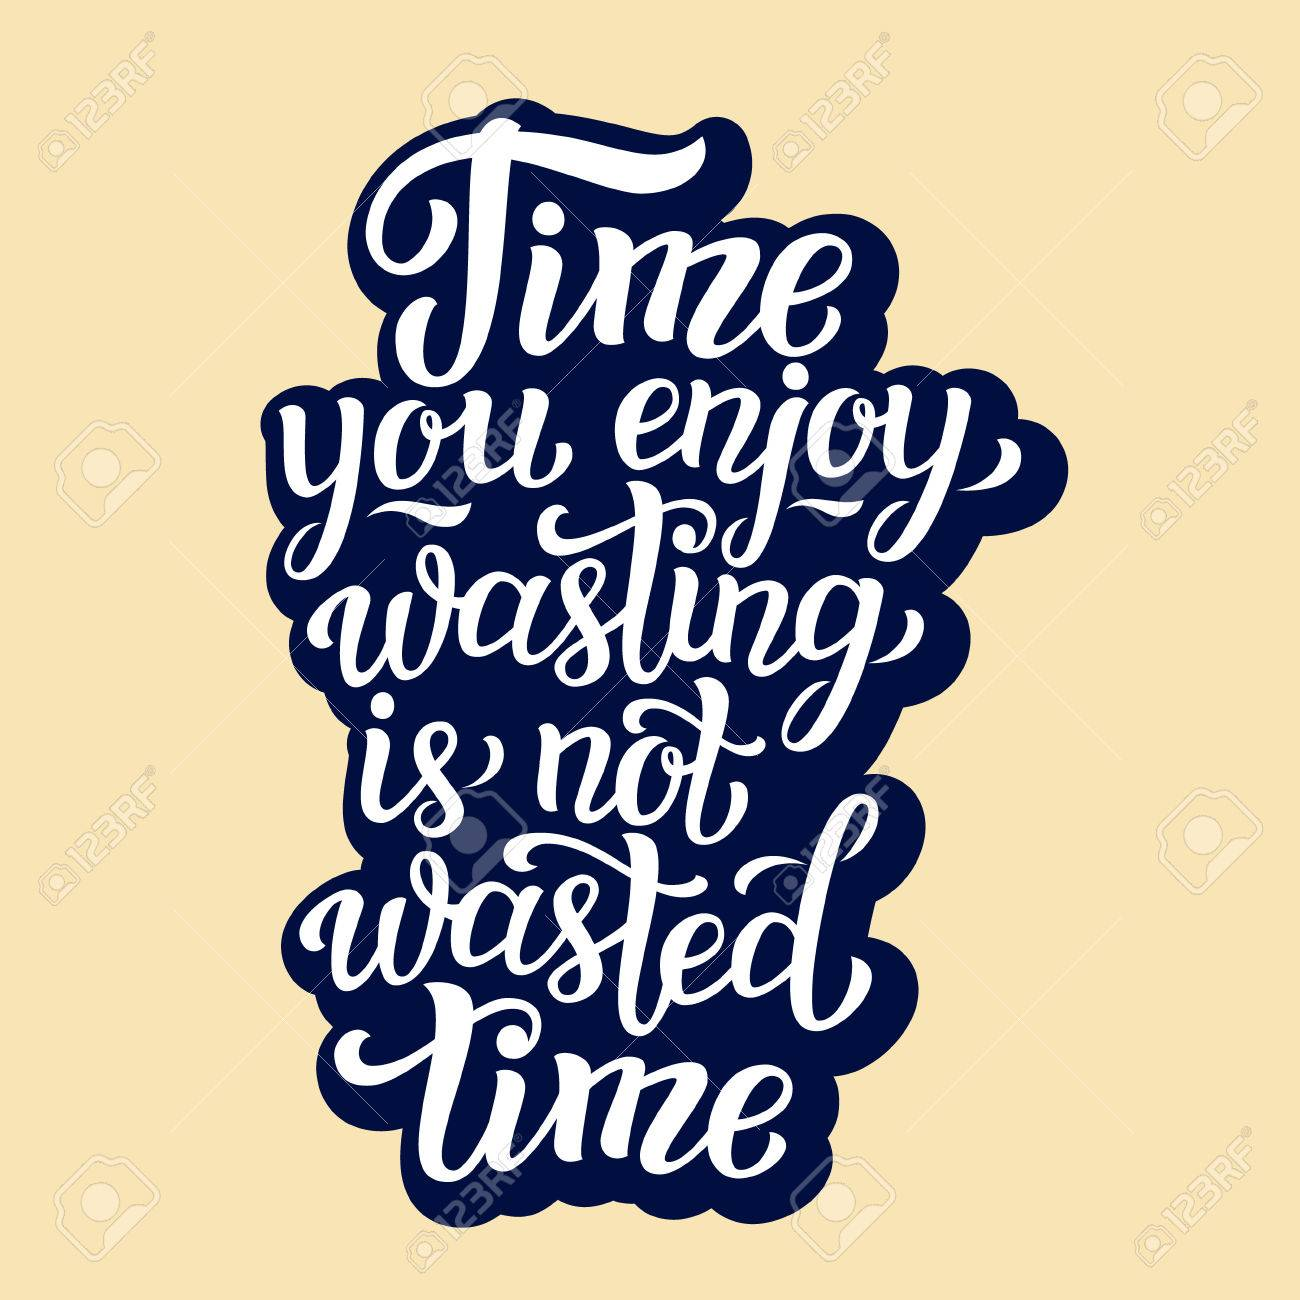 Time You Enjoy Wasting Is Not Wasted Time Hand Lettering Typography